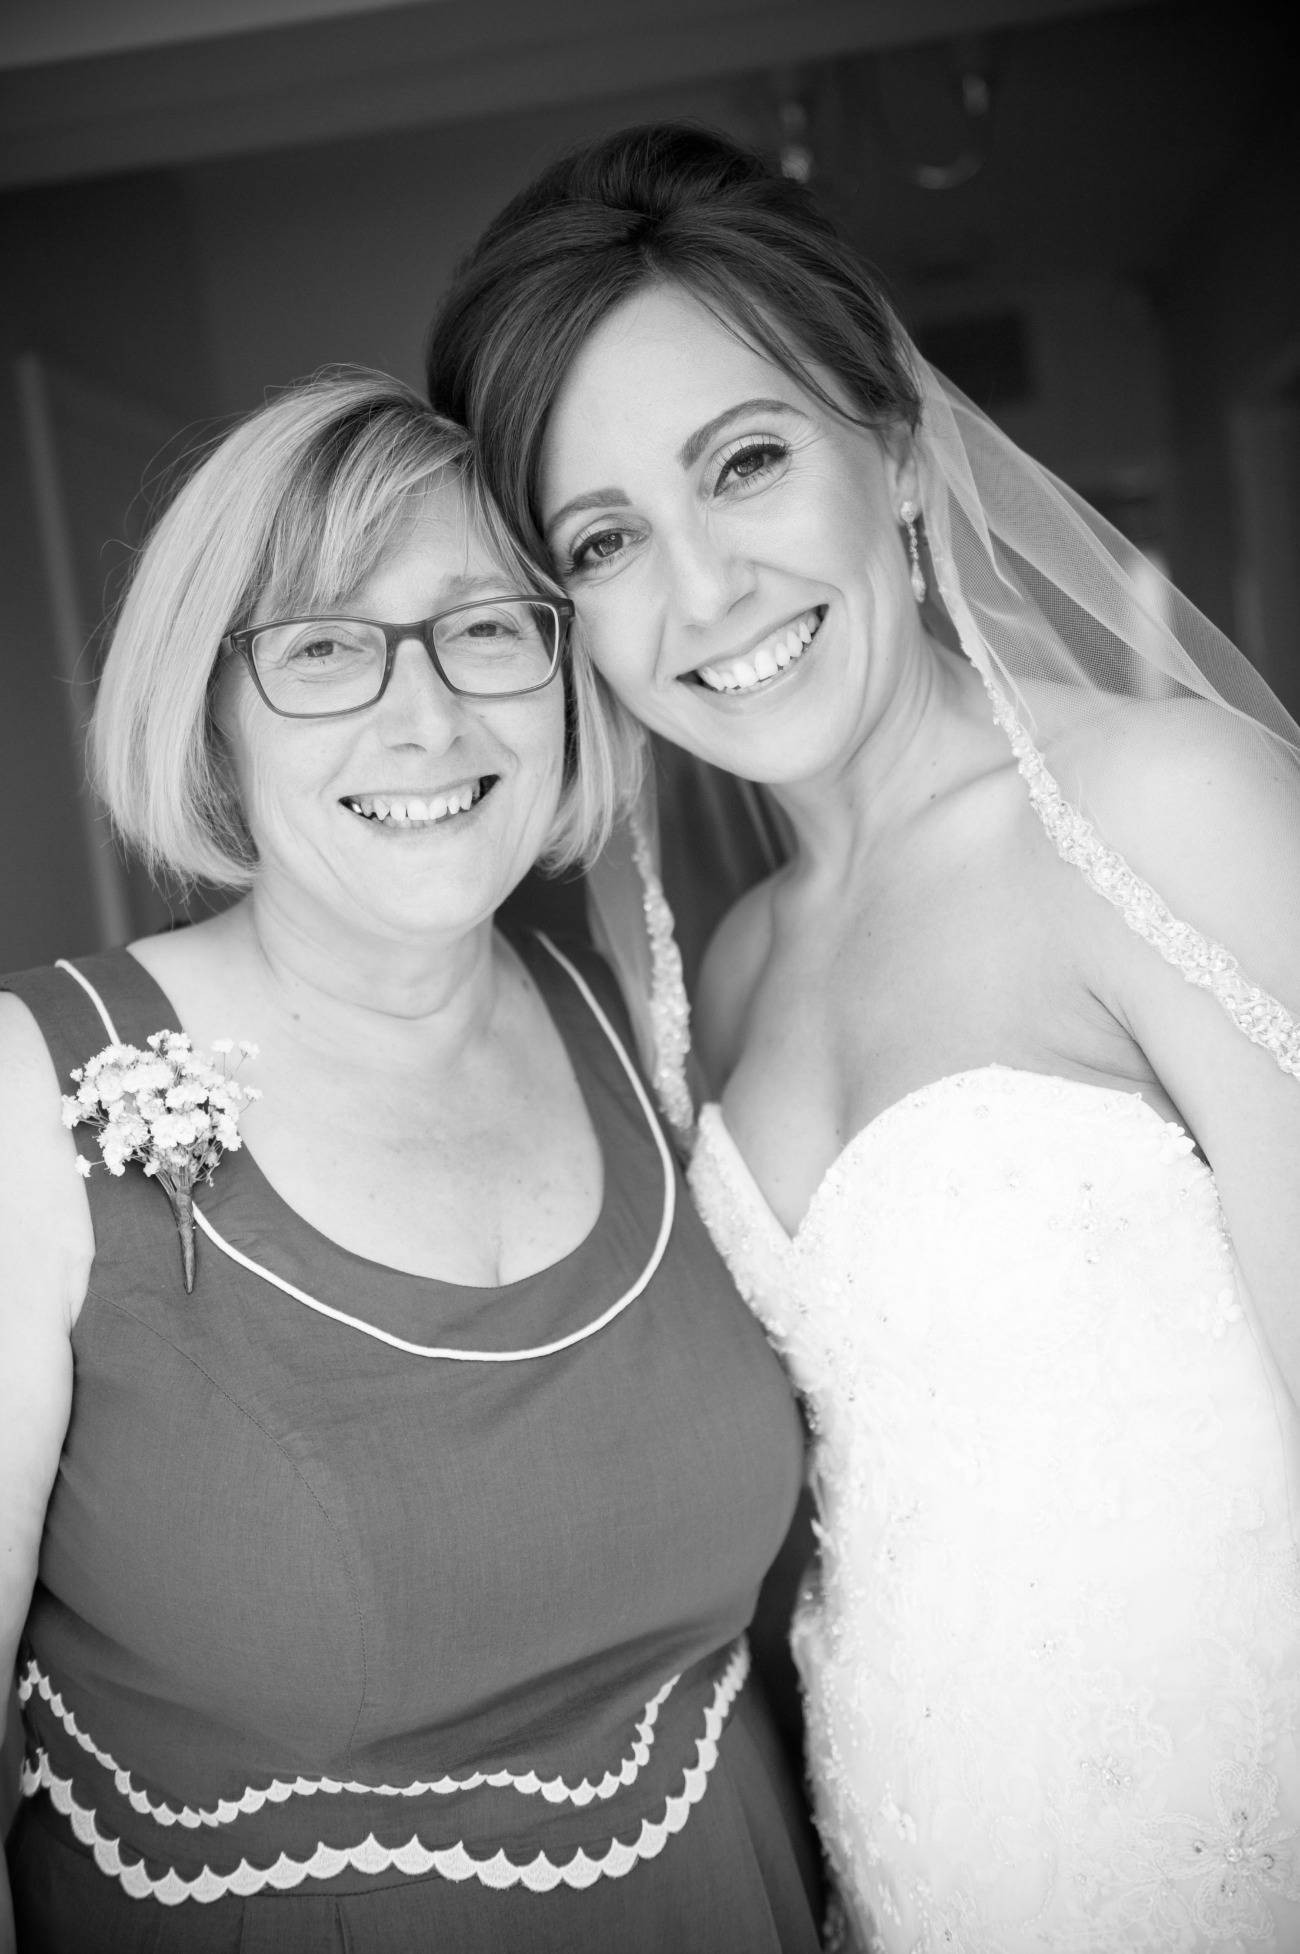 My Mum in a Million | Mother's Day with Nectar and Photobox